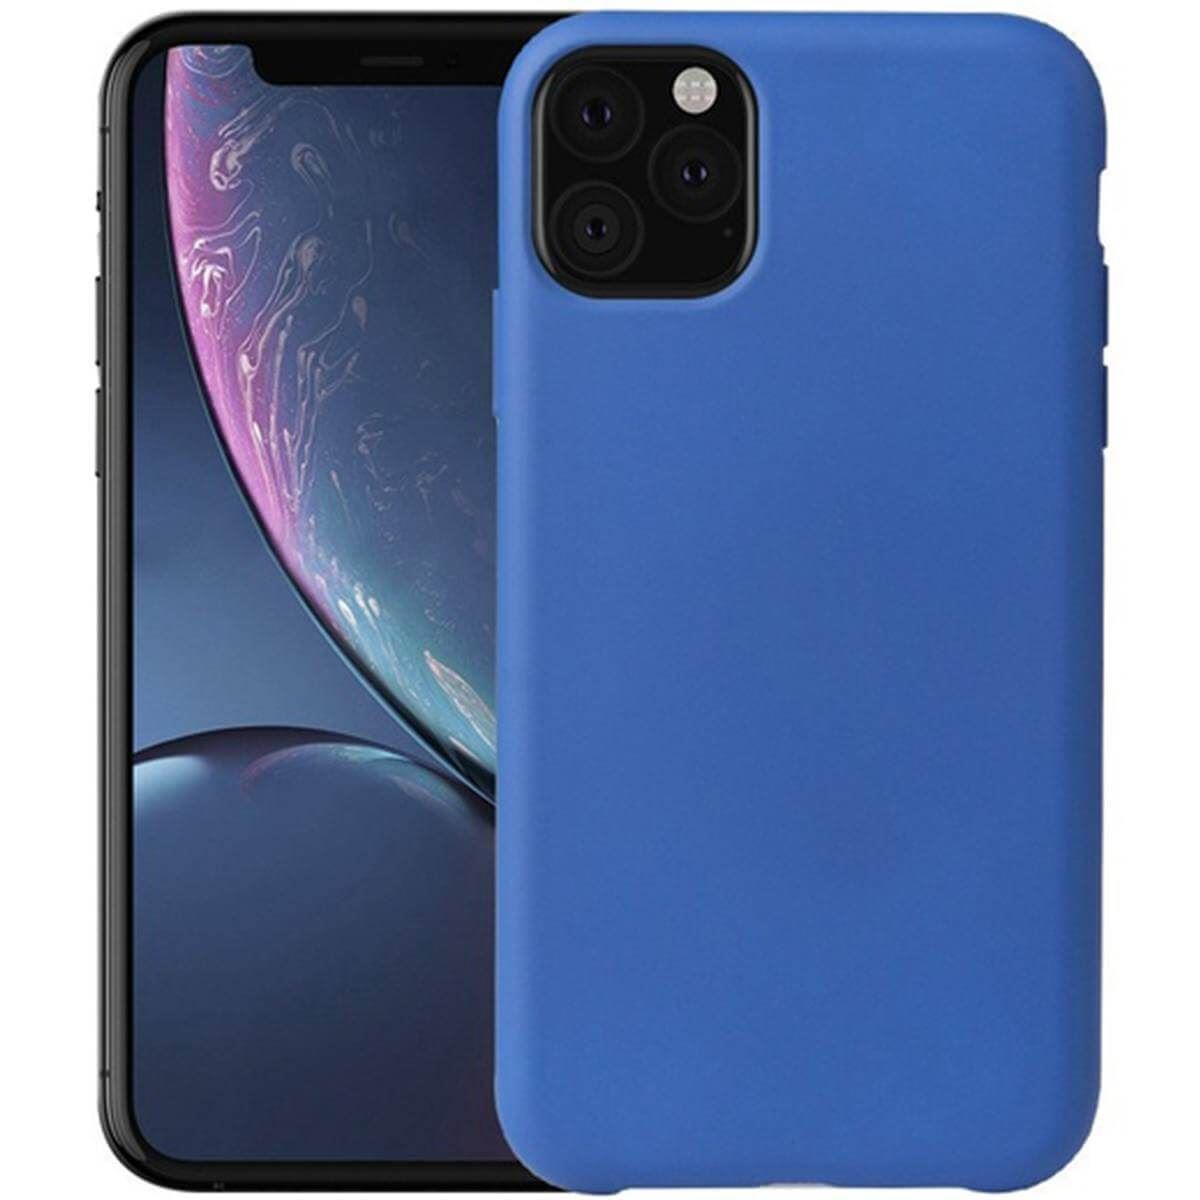 Liquid-Silicone-Shockproof-Case-For-Apple-iPhone-Soft-Matte-Back-Phone-Cover thumbnail 10